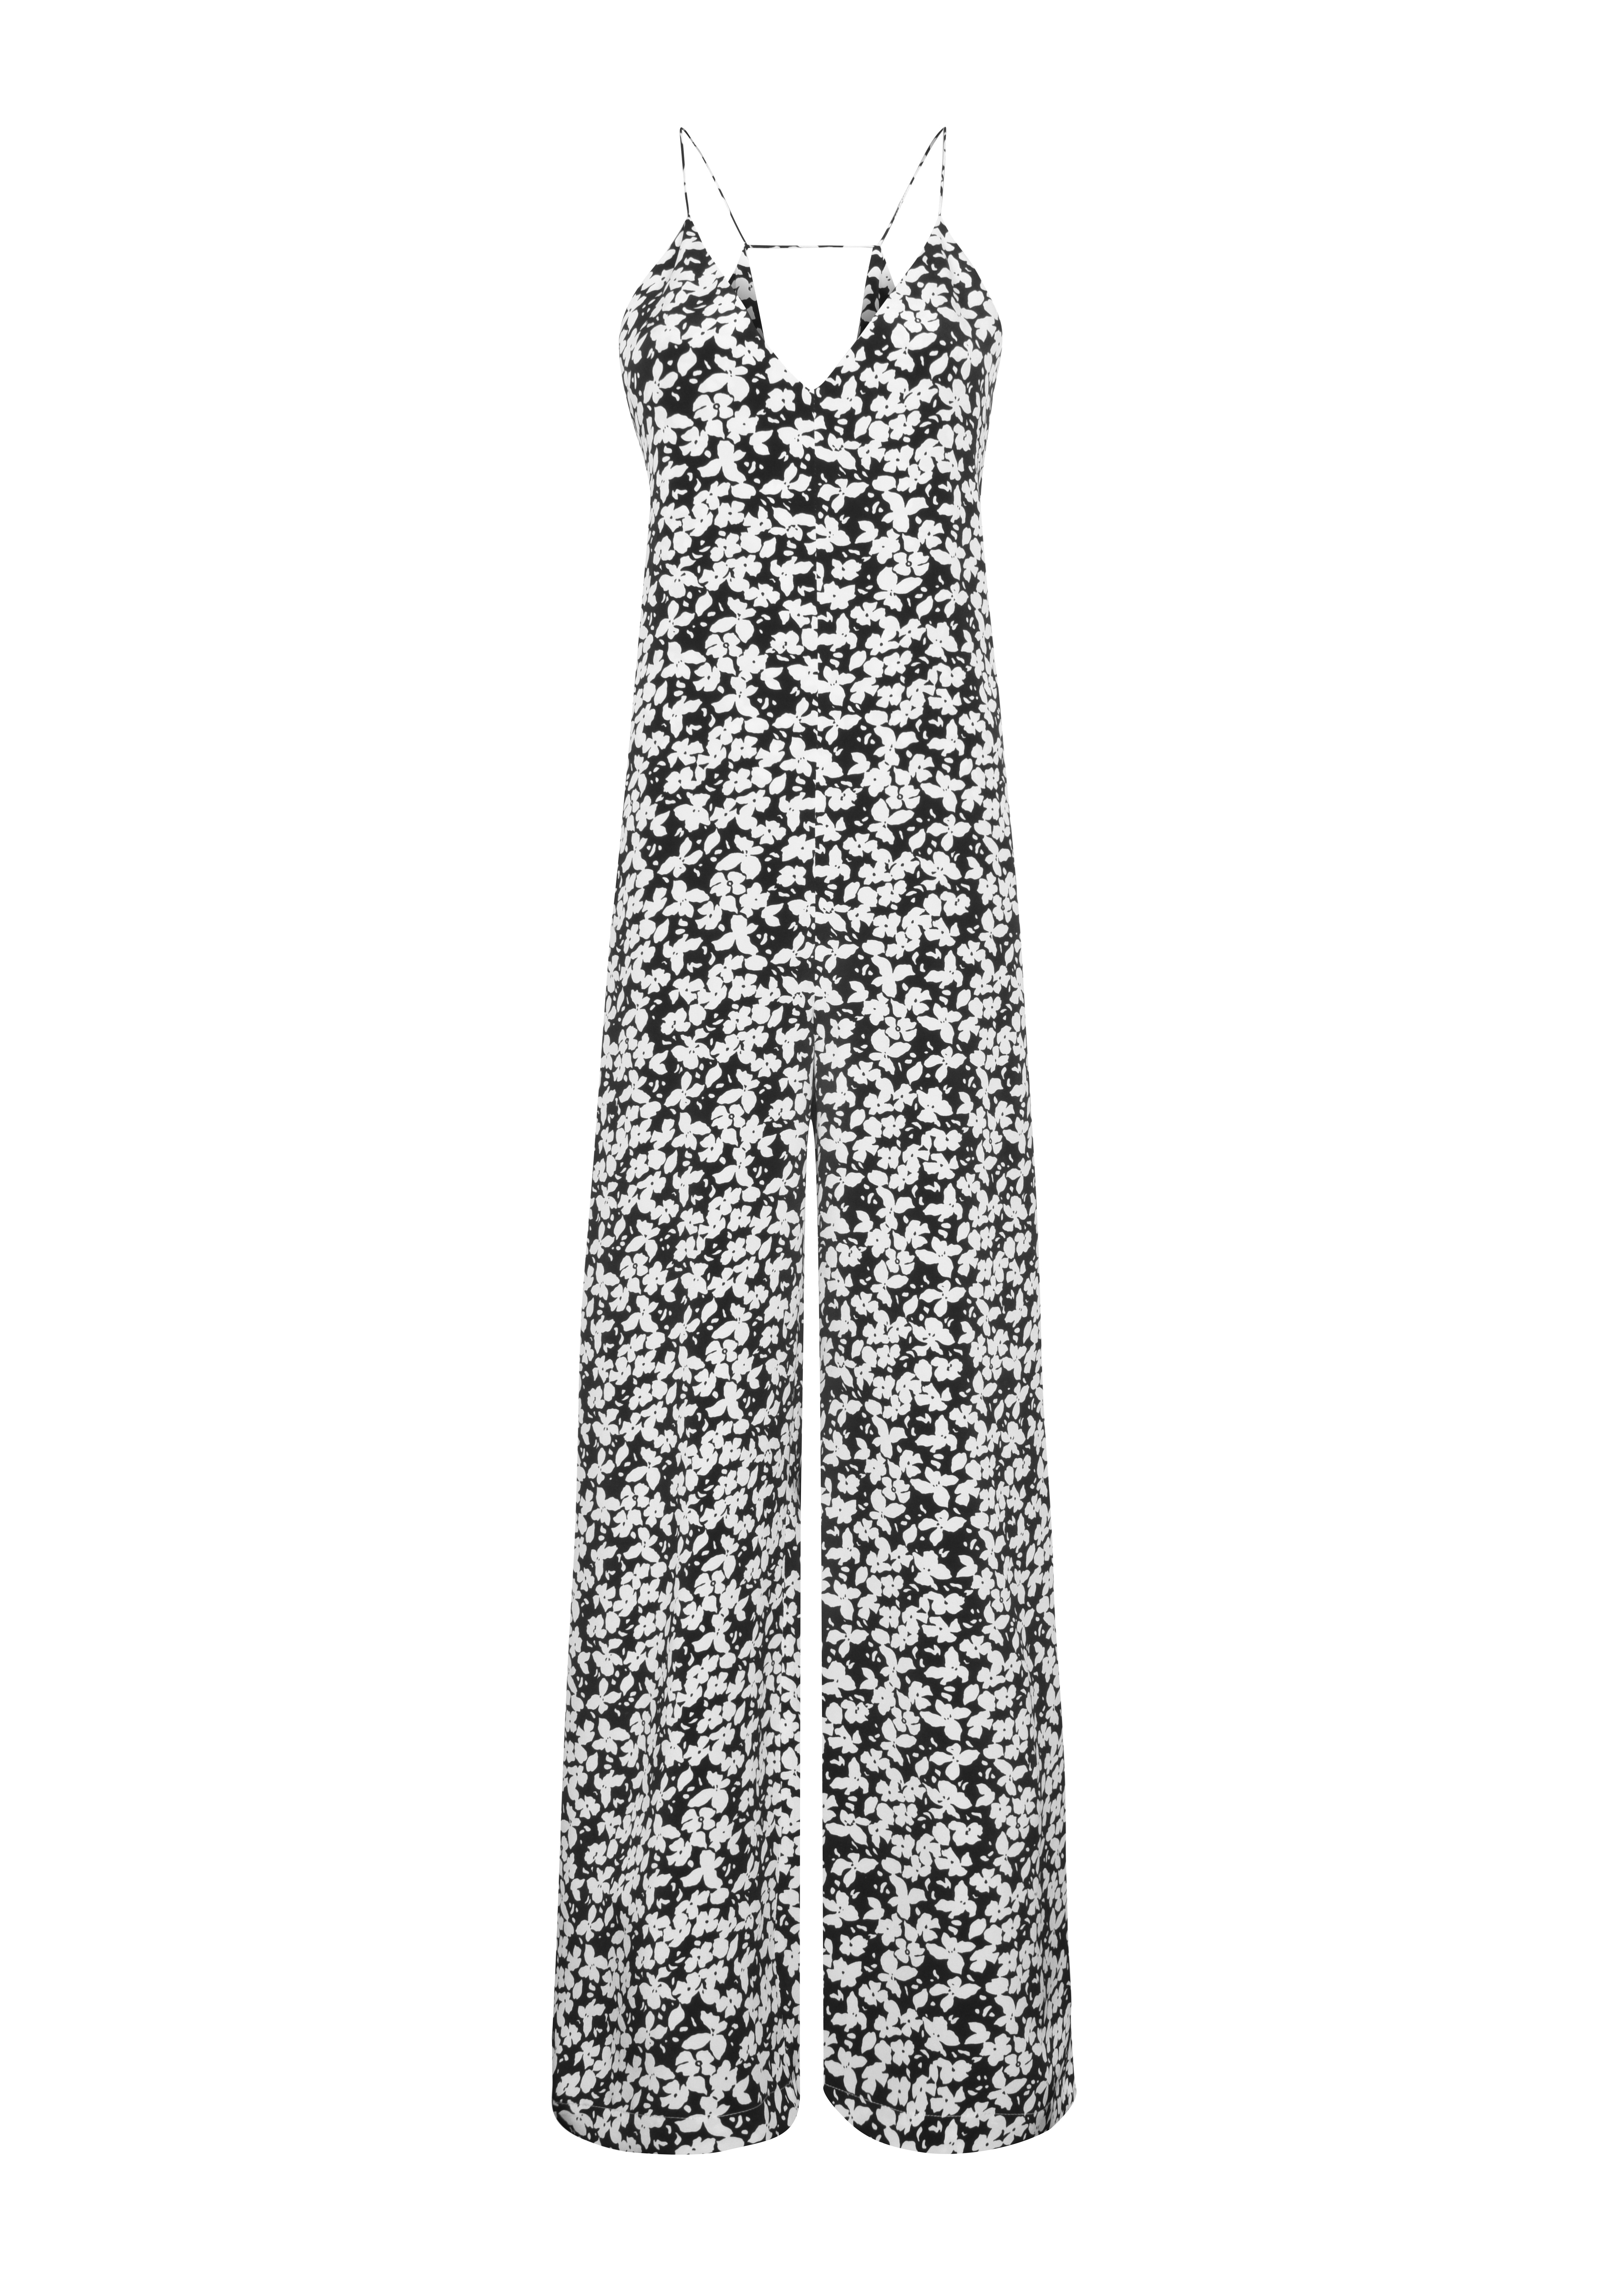 Fleurette Jumpsuit - Black by Podeny on curated-crowd.com